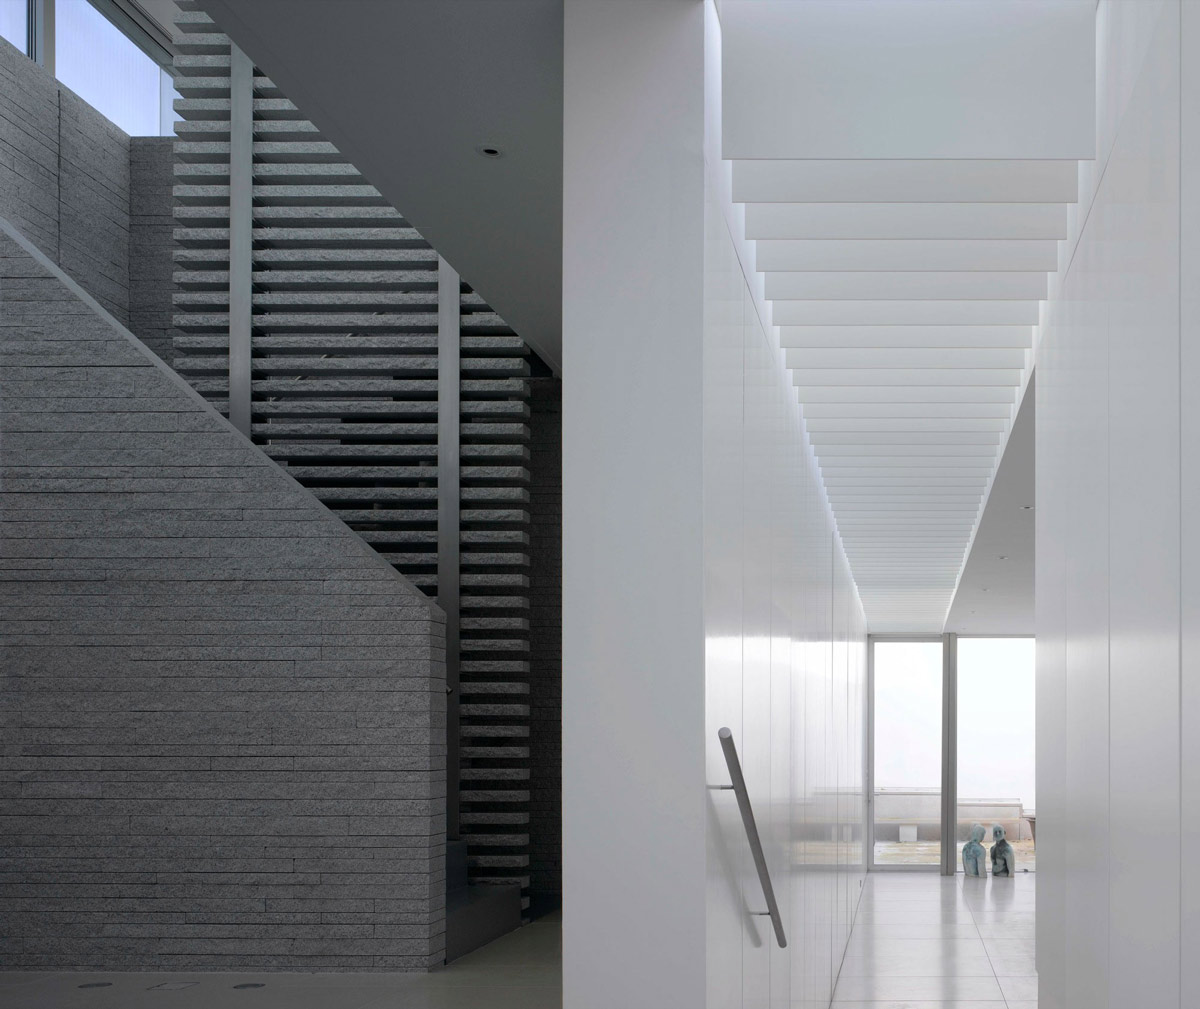 Stairs, Hallway, Burren House in Dublin, Ireland by Níall McLaughlin Architects